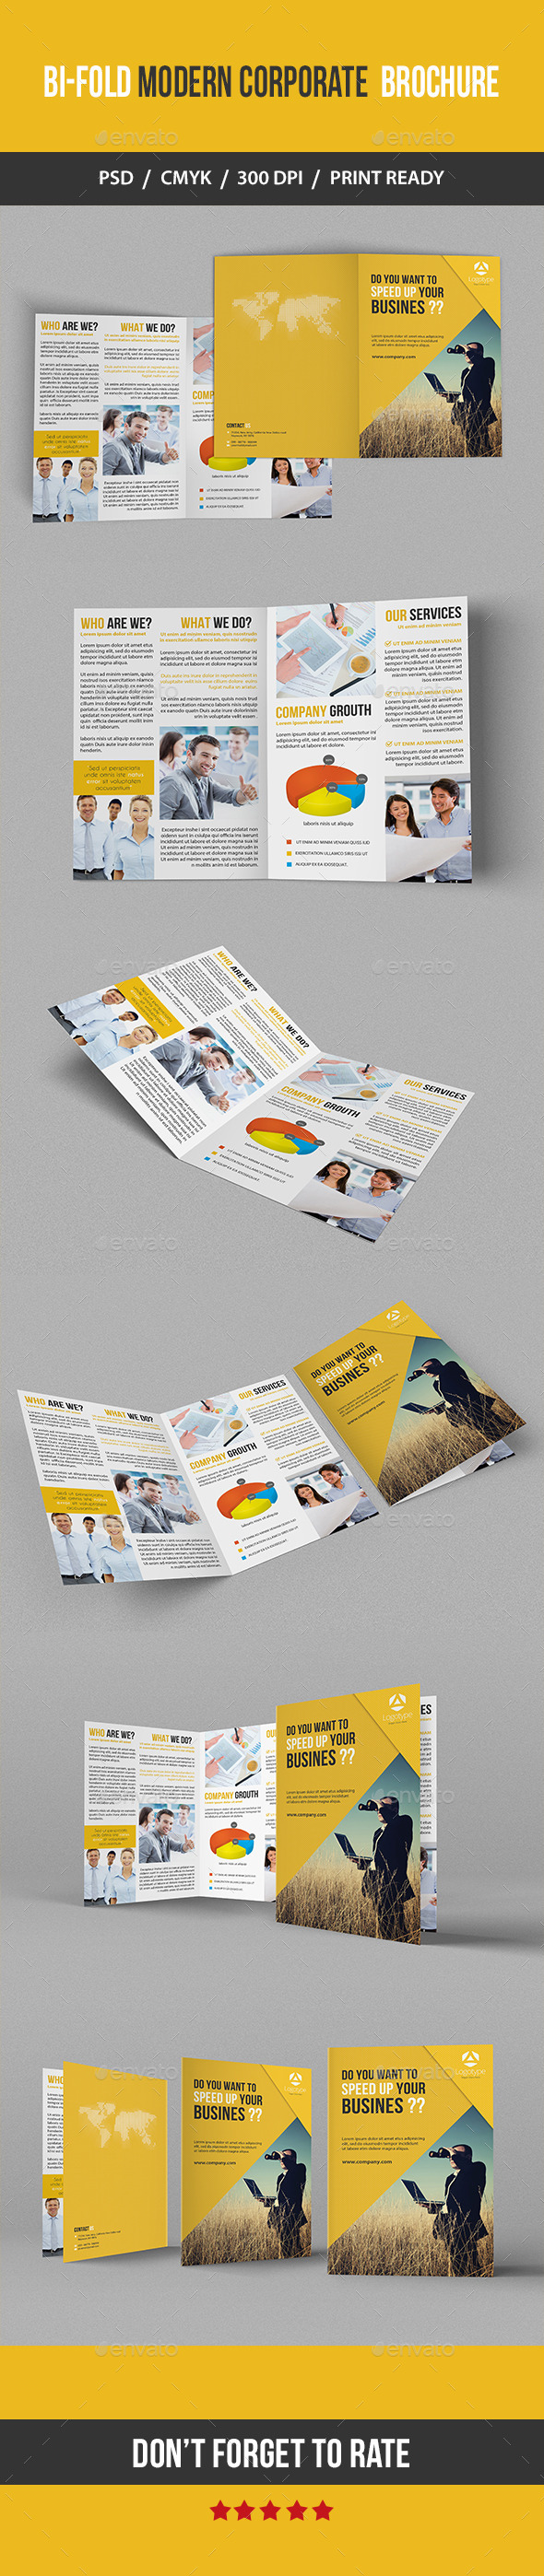 GraphicRiver Bi-fold Modern Corporate Brochure 11153639